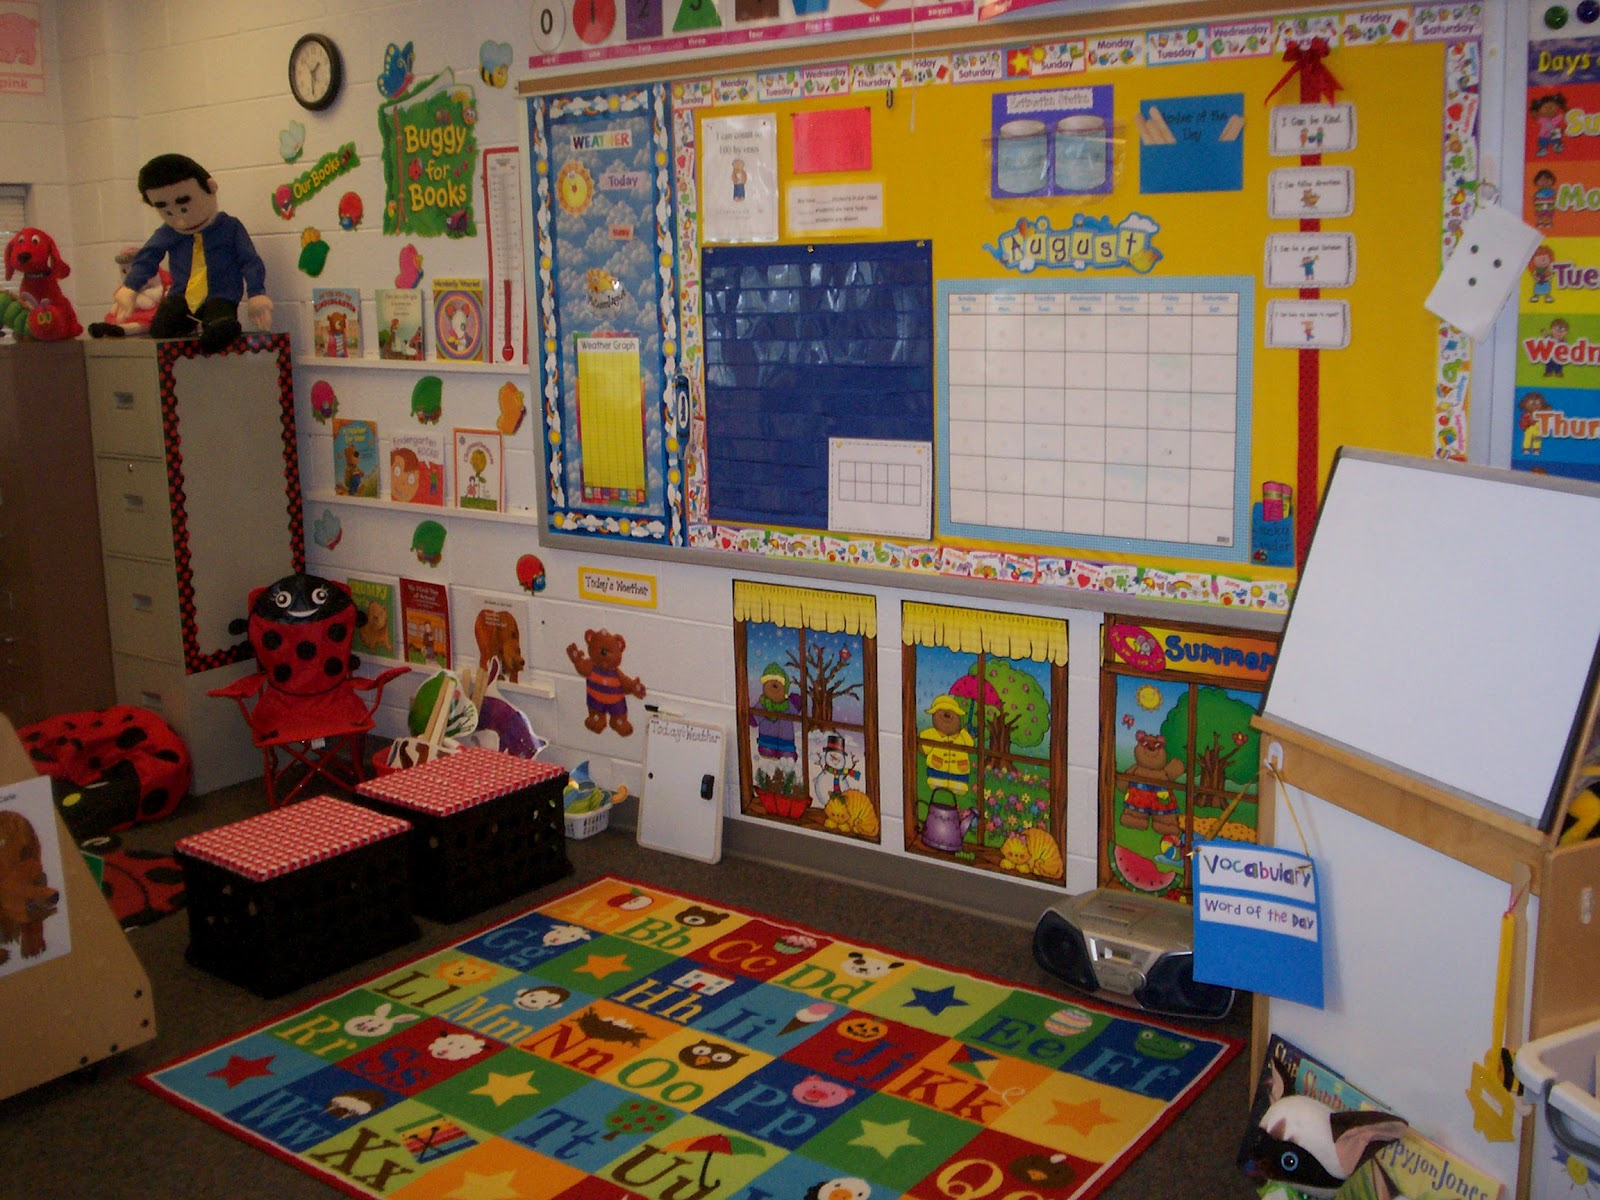 Design Your Own Salon Floor Plan Ladybug In Kindergarten Classroom Set Up